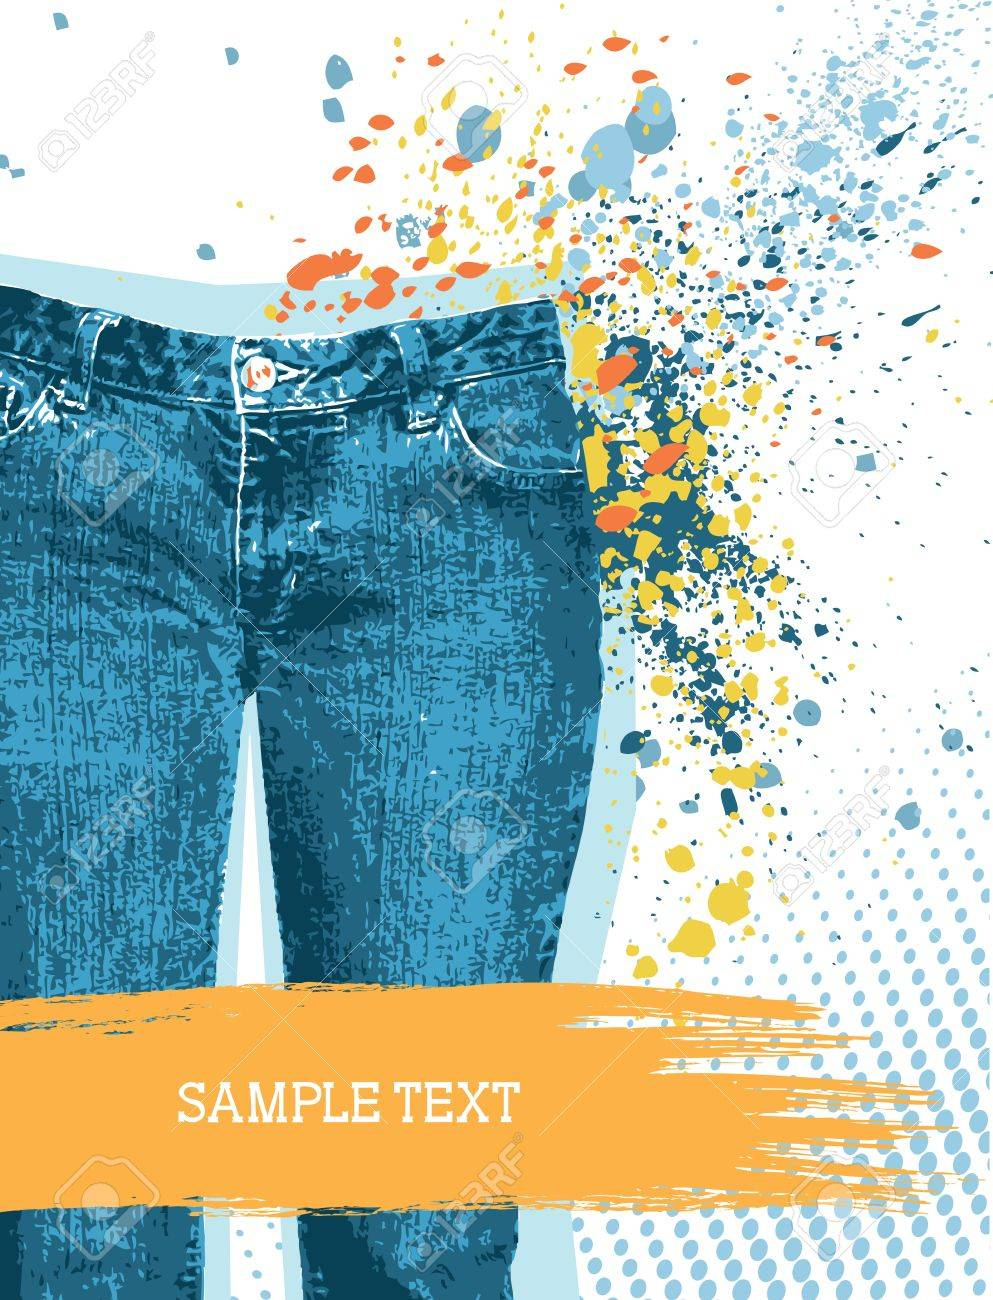 Denim background for design with grunge elements for text on white.Jeans Stock Vector - 9244915